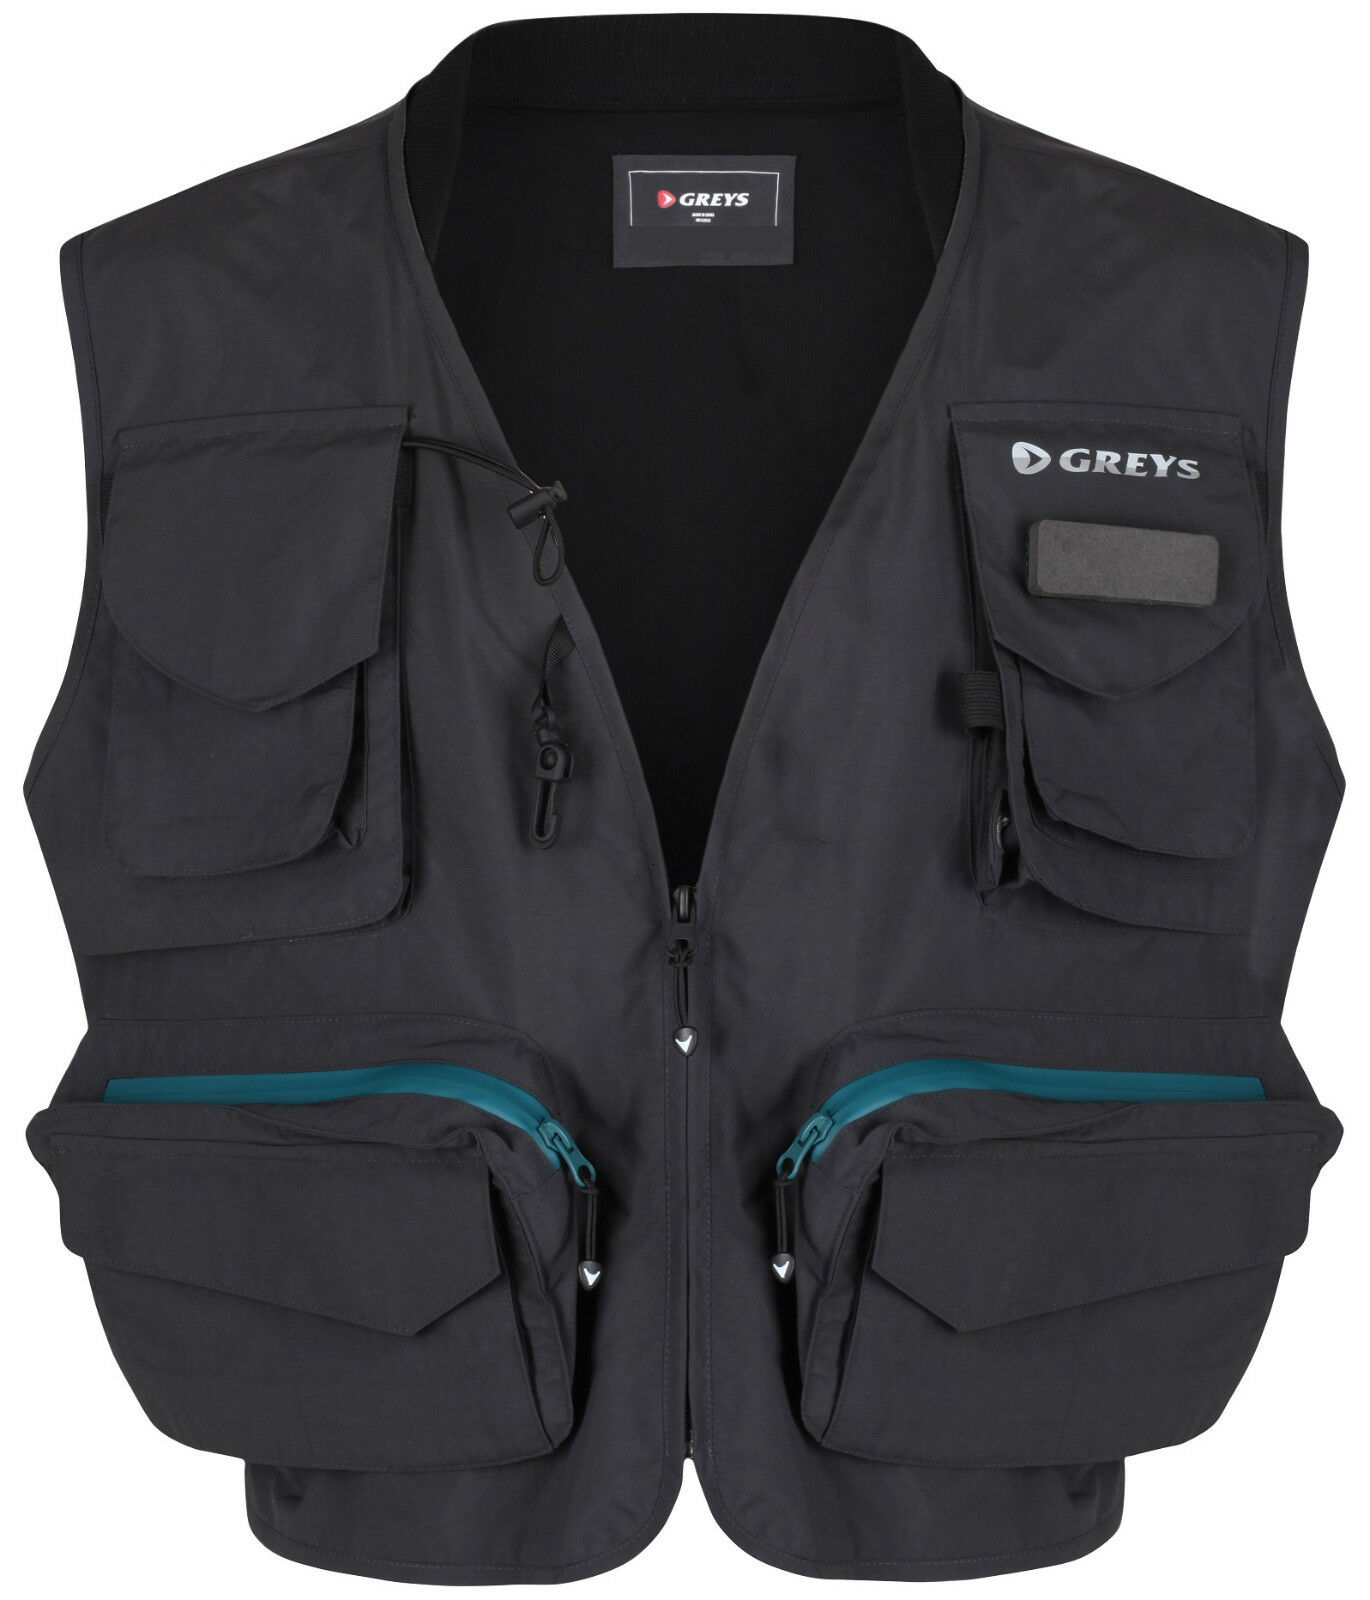 Greys Fishing Vest  Fliegenfischerweste Weste Angelweste Spinnweste Fly Vest  no minimum